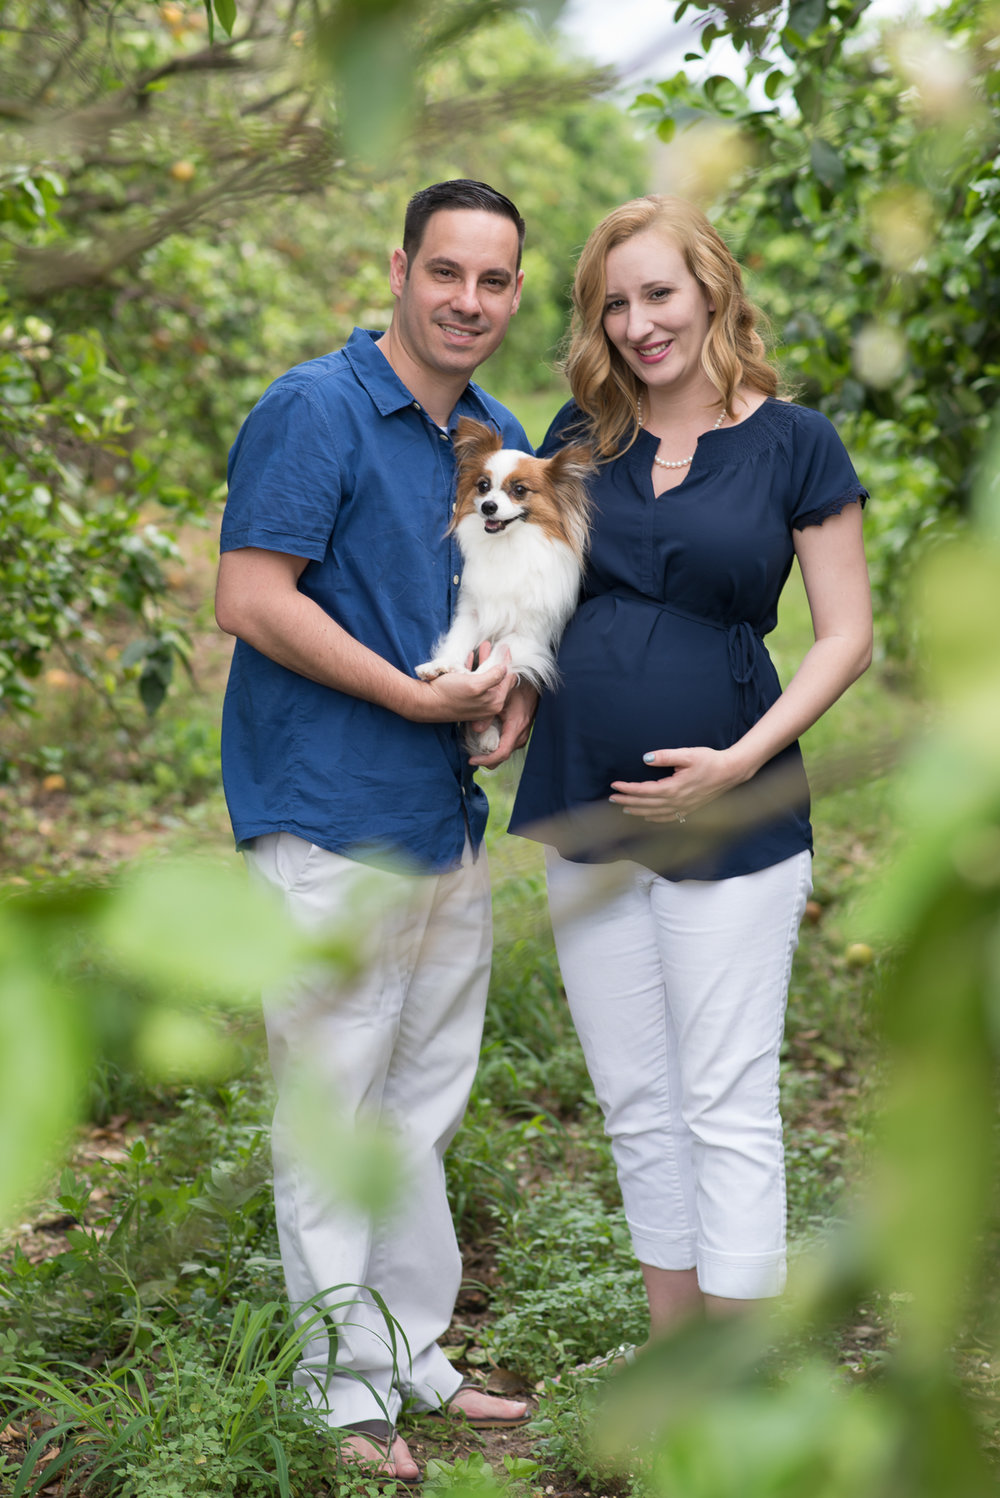 Maternity Photos - Puppy Maternity Photos by Corner House Photography